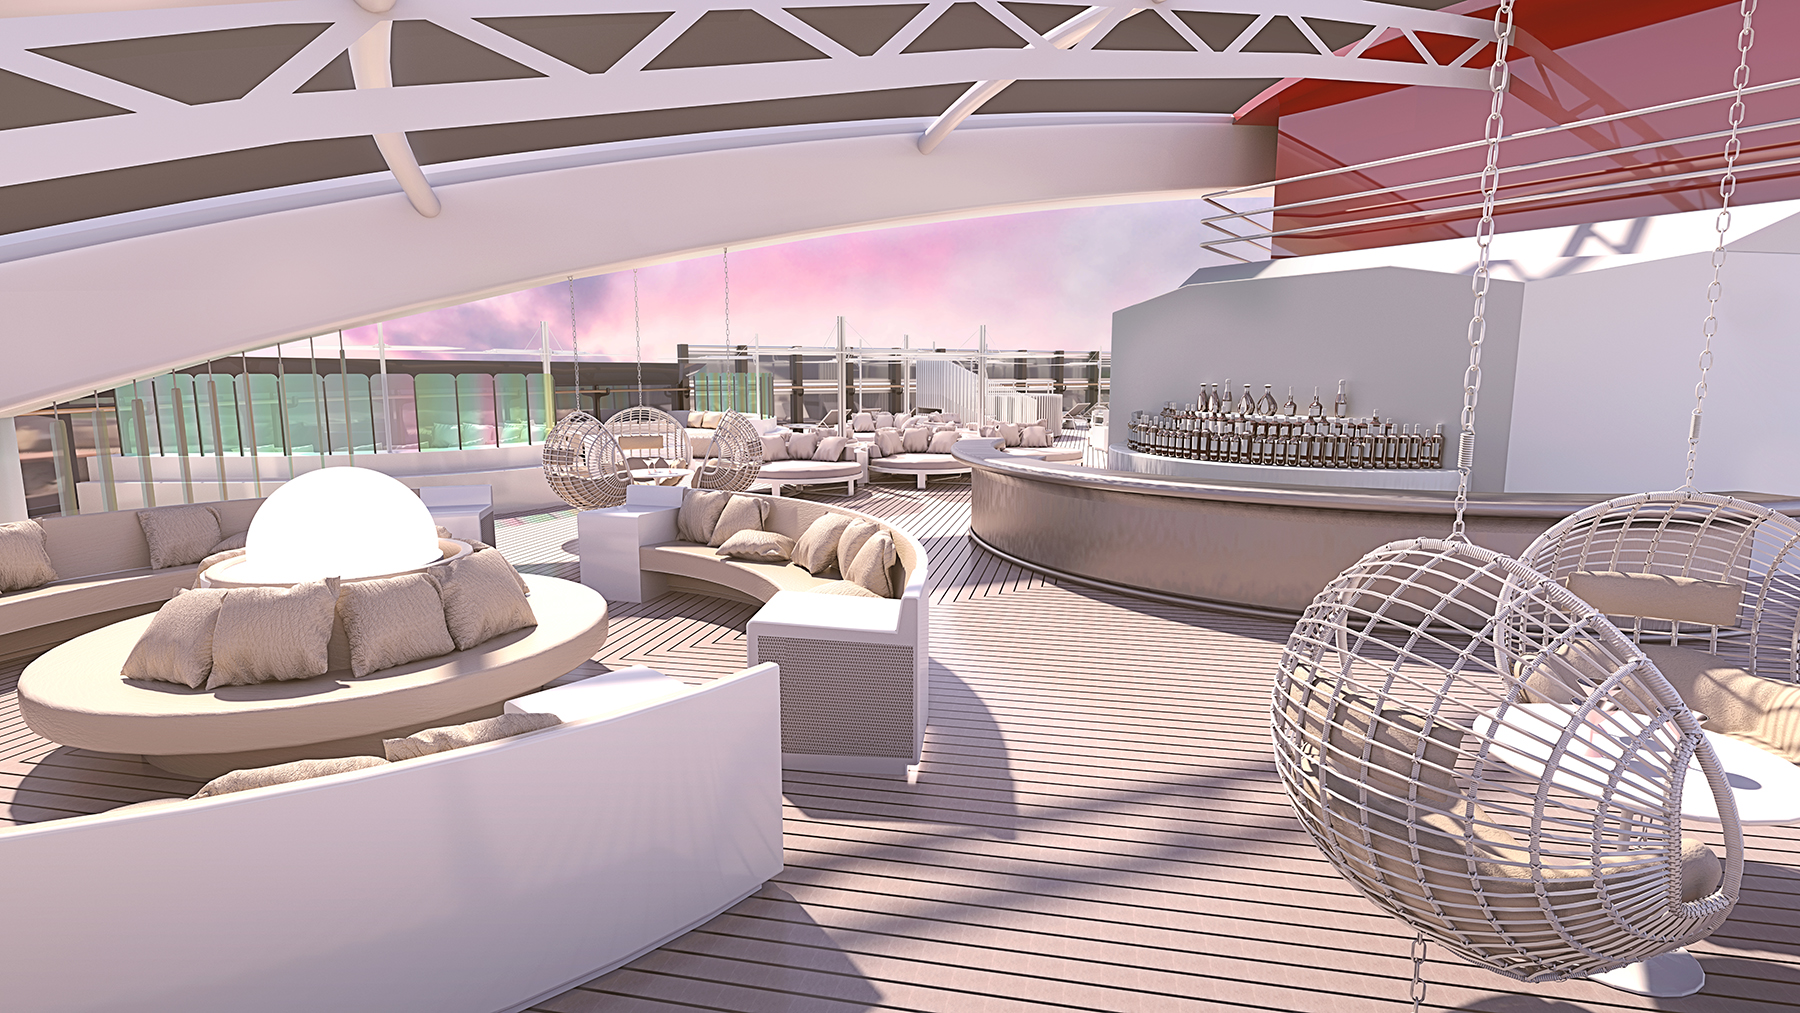 virgin voyages, Richard branson, ship, design